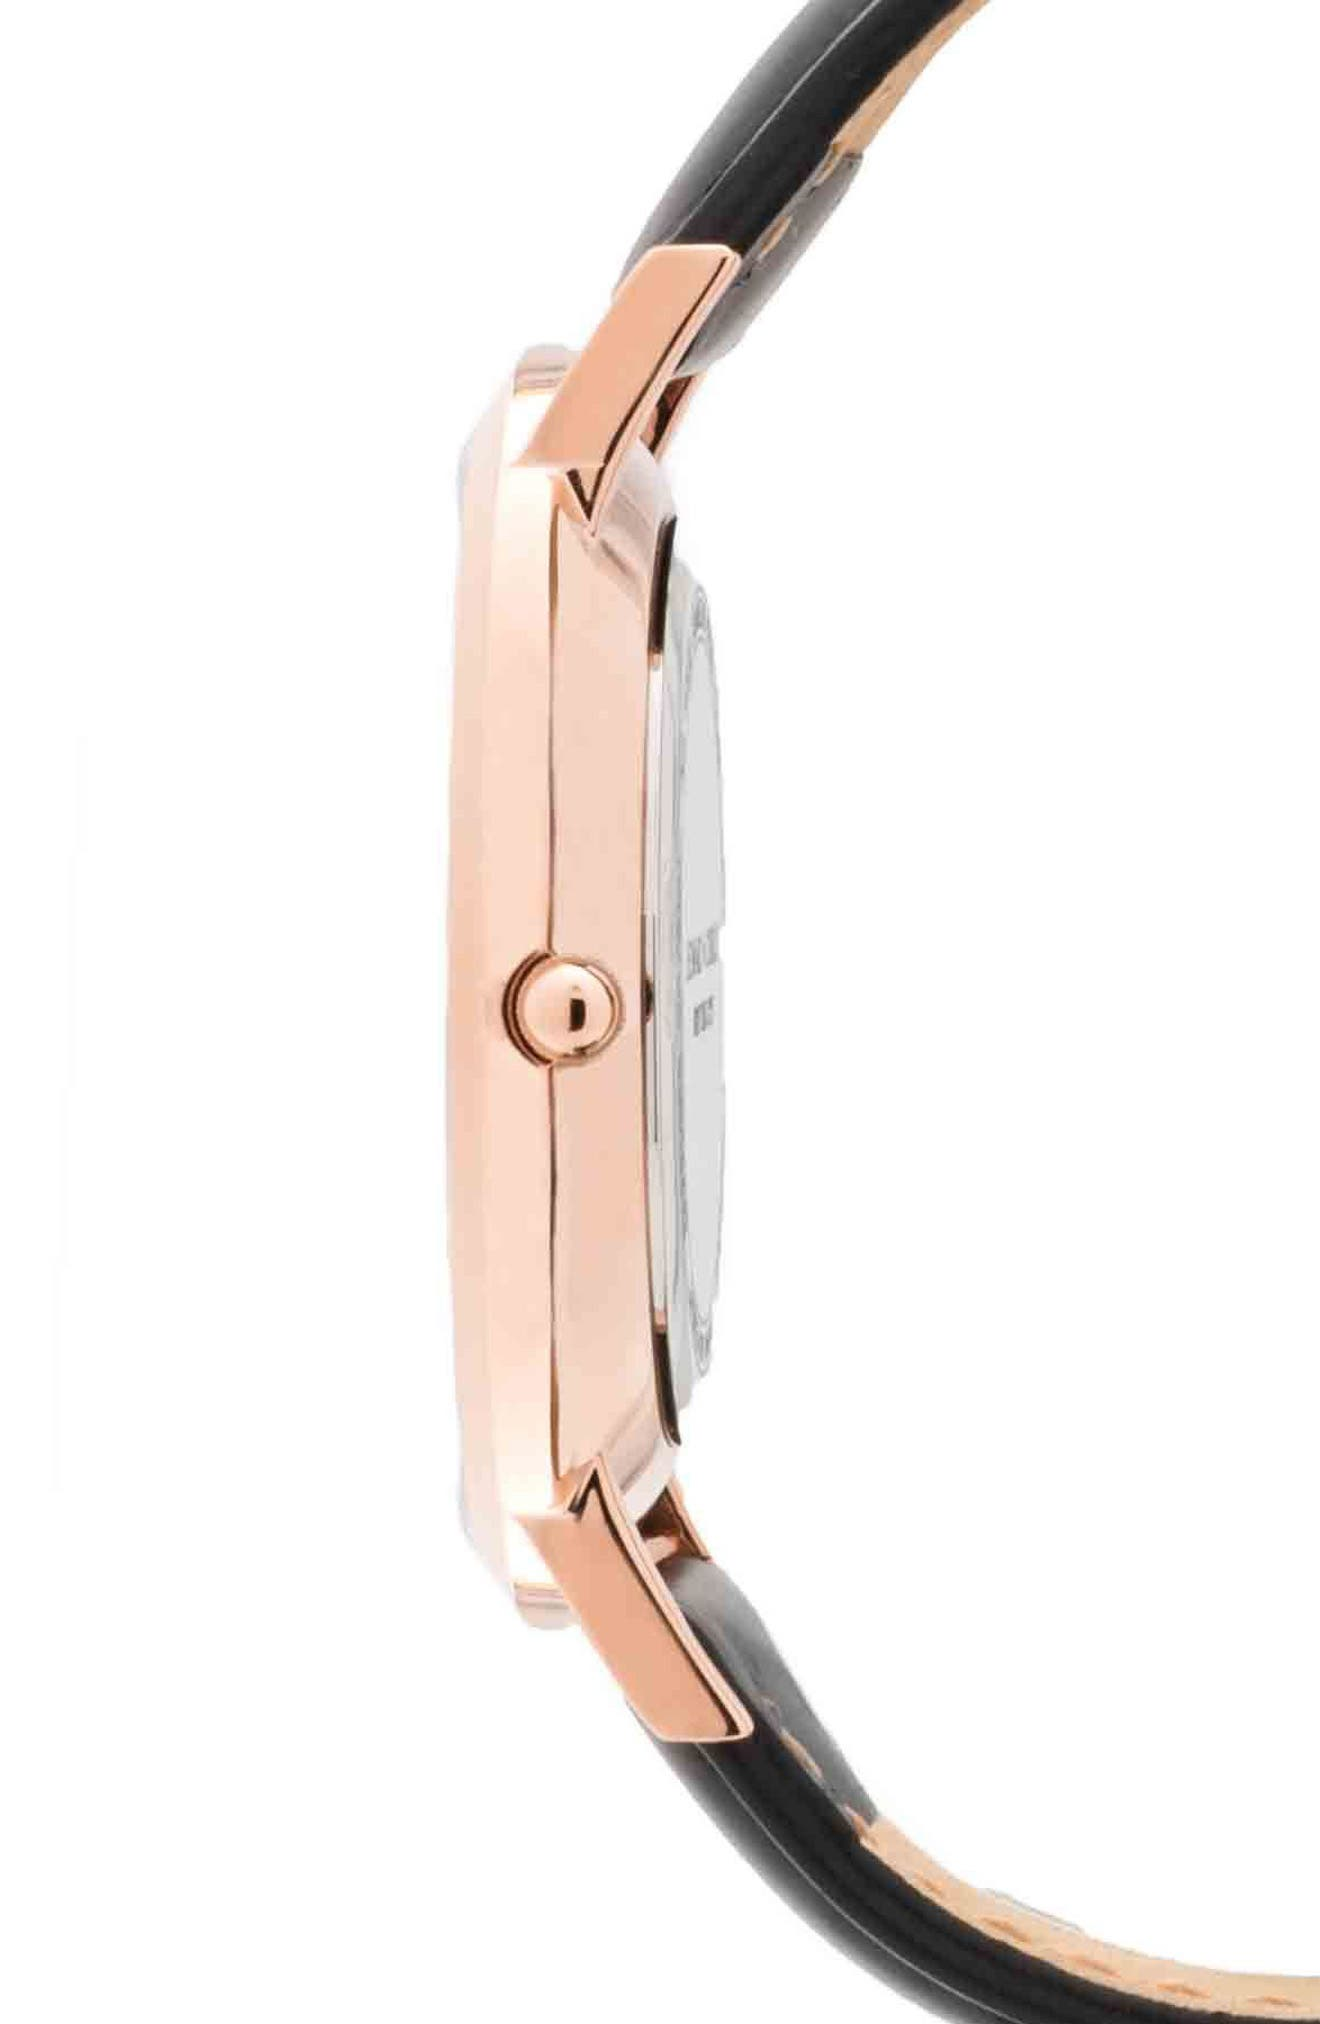 Leonard & Church Crosby Leather Strap Watch, 40mm,                             Alternate thumbnail 2, color,                             Black/ Rose Gold